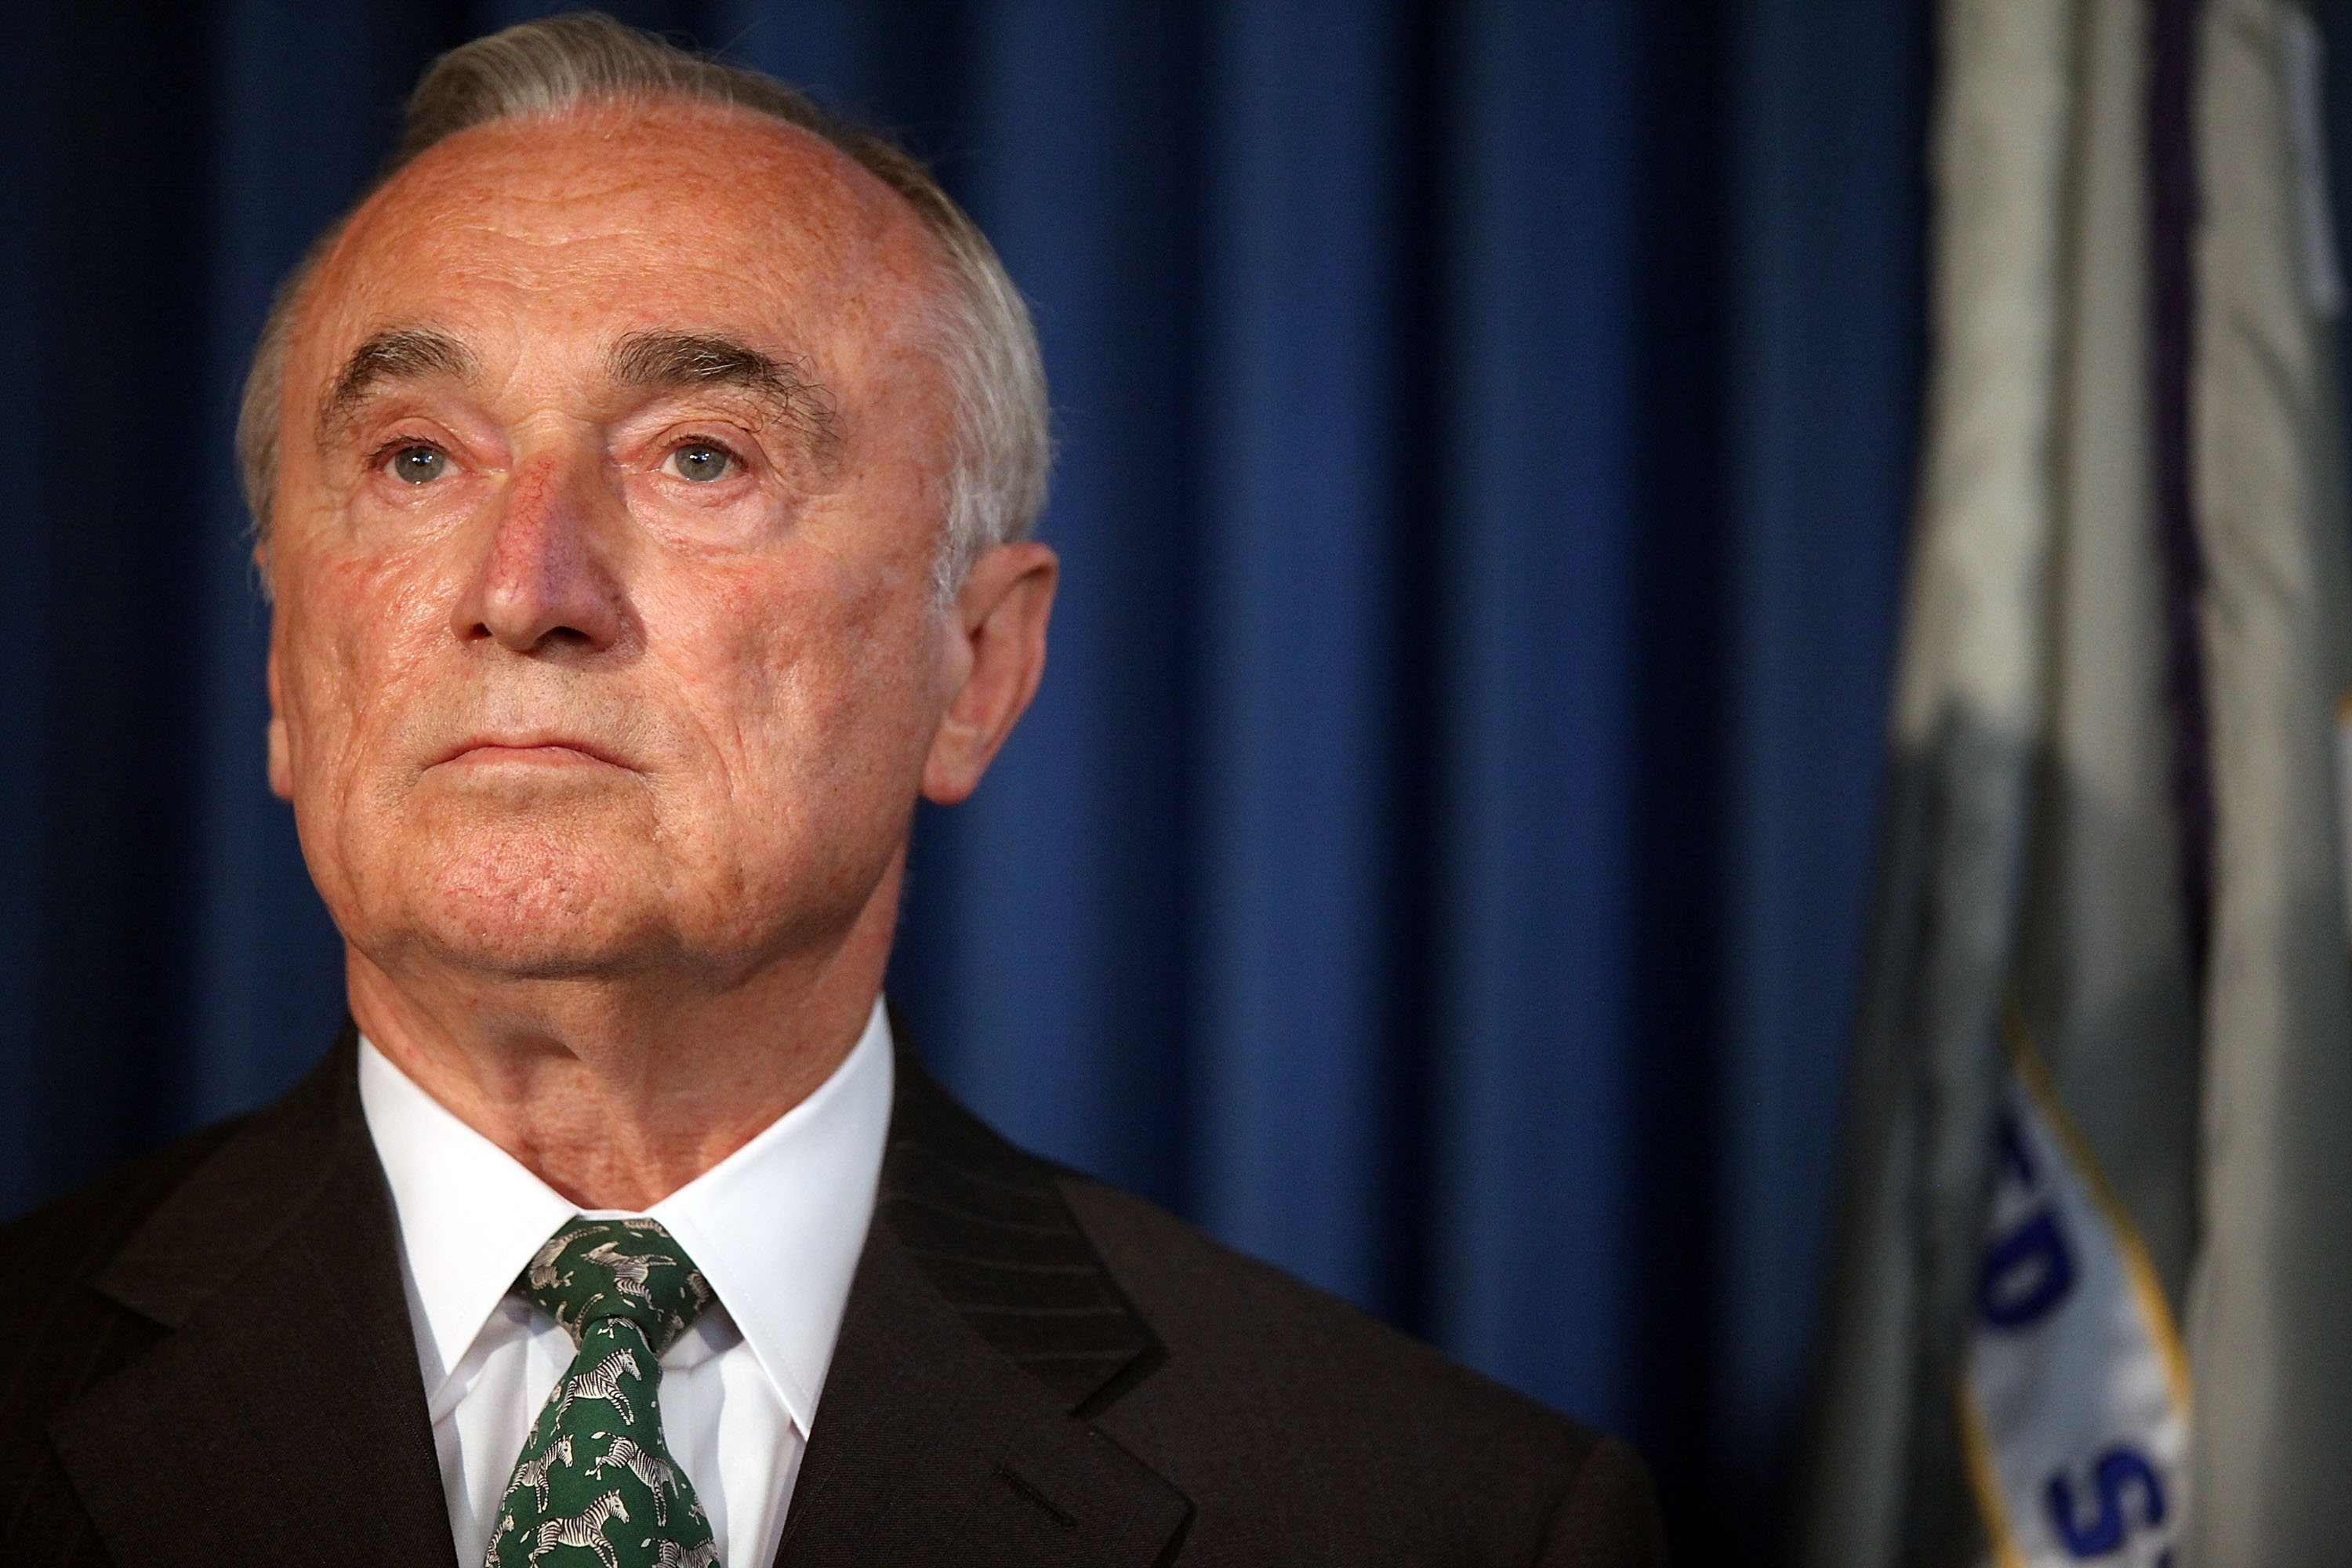 New York Police Department Commissioner William J. Bratton, at a news conference with other law enforcement heads where it was announced that the Federal and New York City authorities have broken up a group that trafficked in synthetic marijuana, known as K2 in New York City, on Sept. 16, 2015.